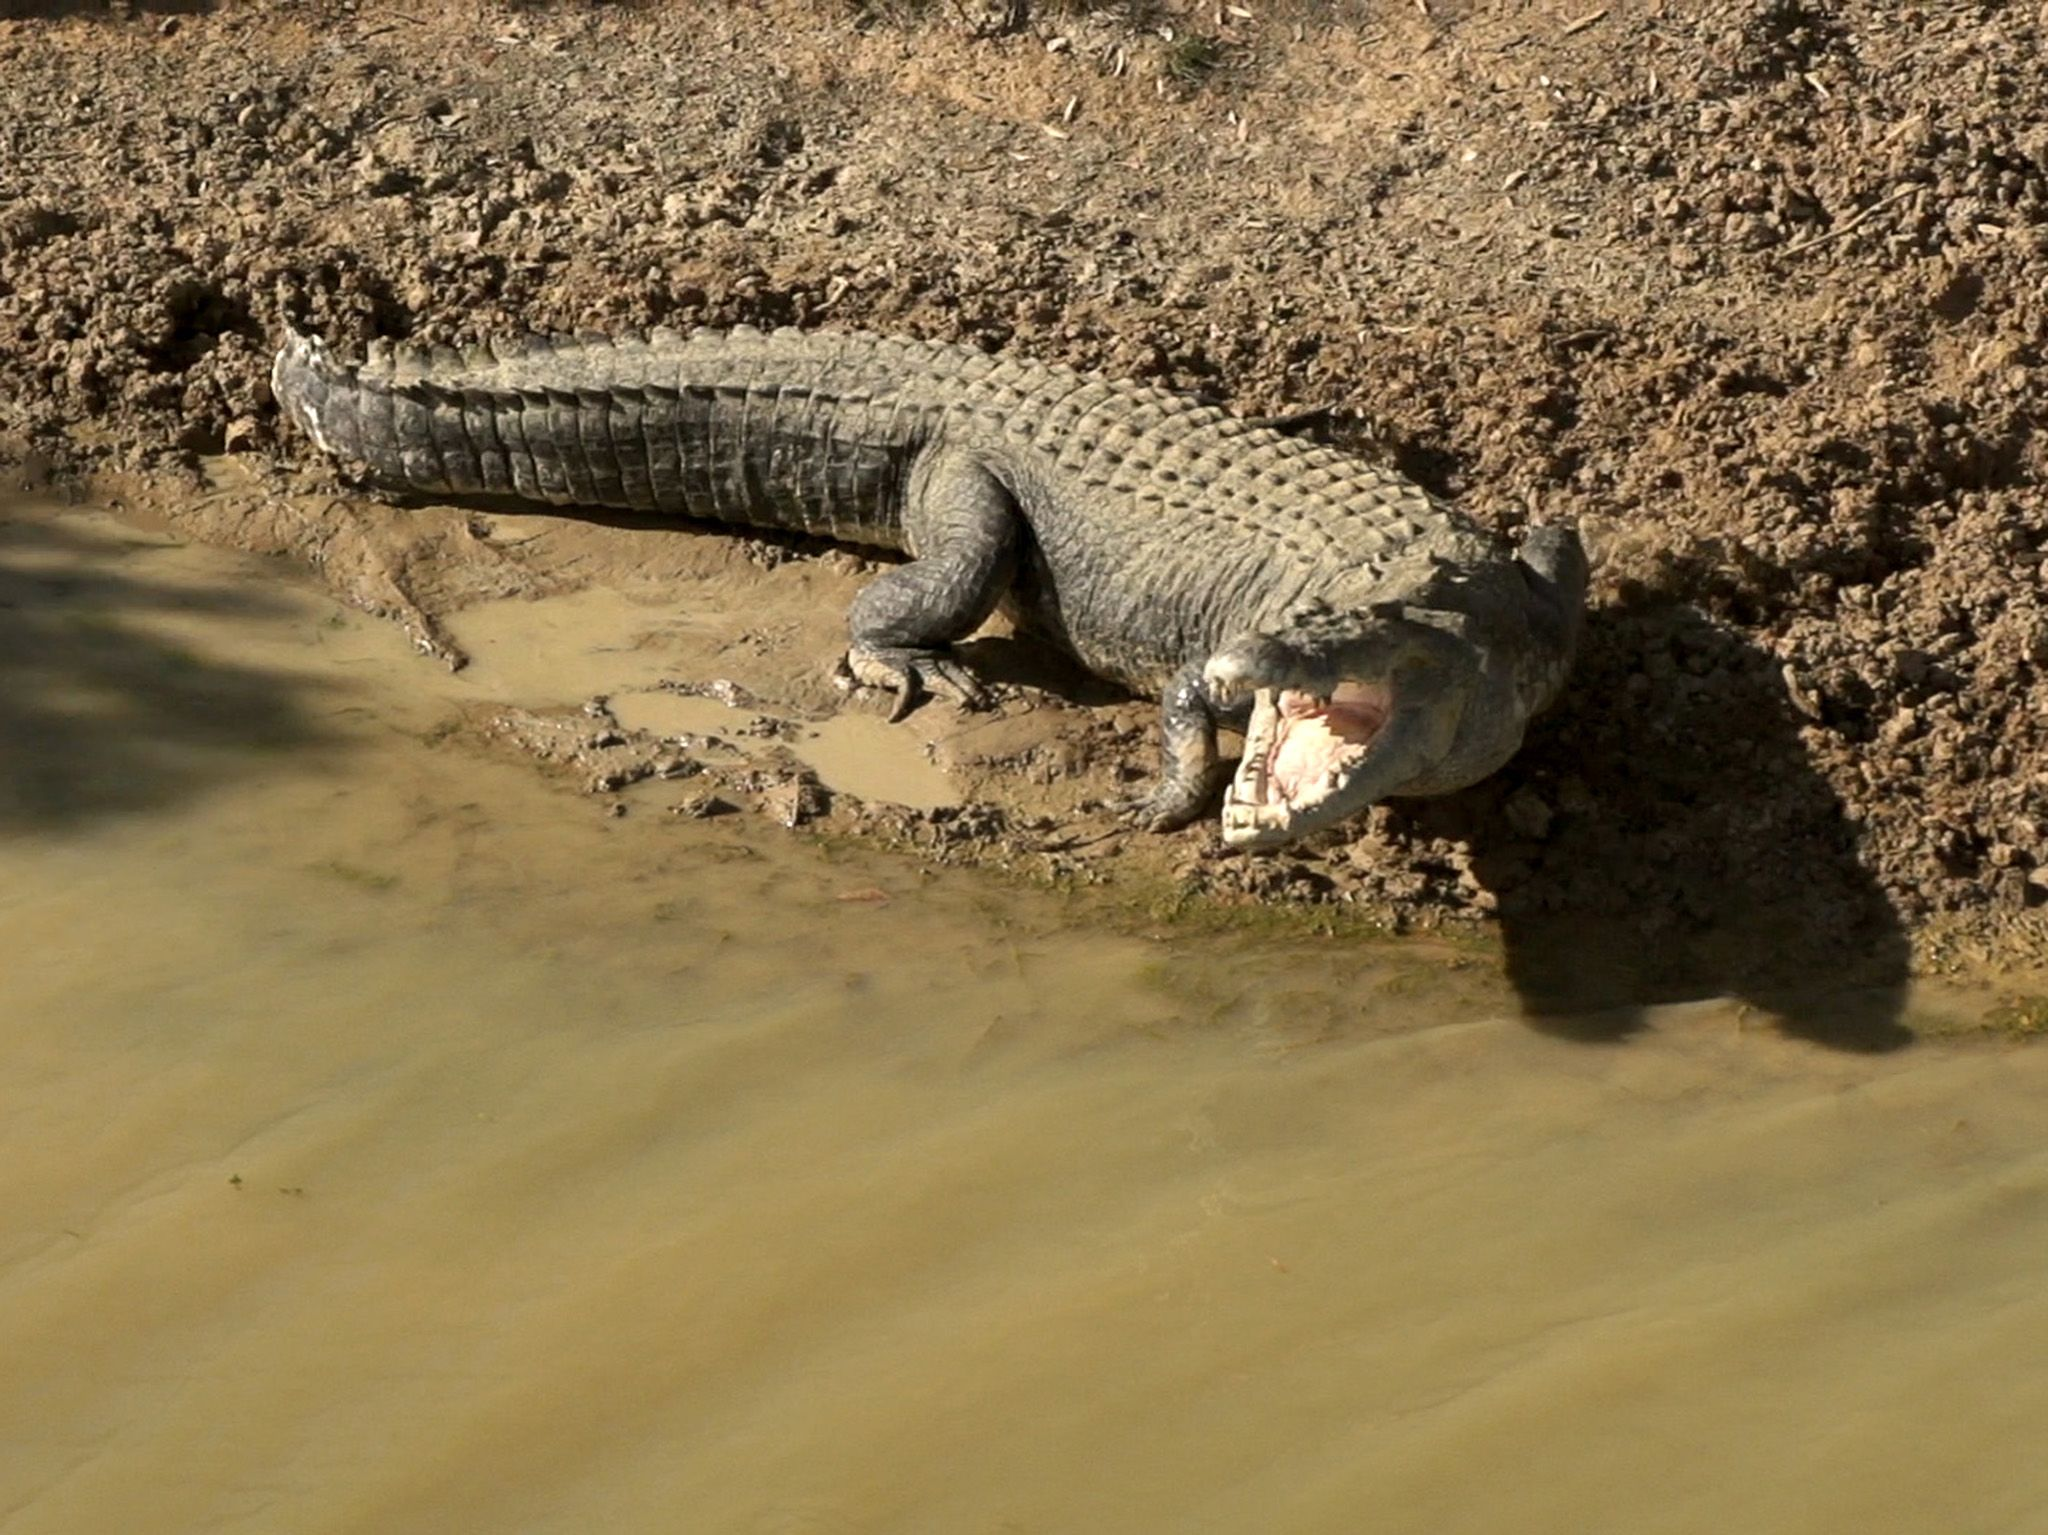 A croc shows its teeth. This image is from Monster Croc Wrangler. [Photo of the day - July 2020]